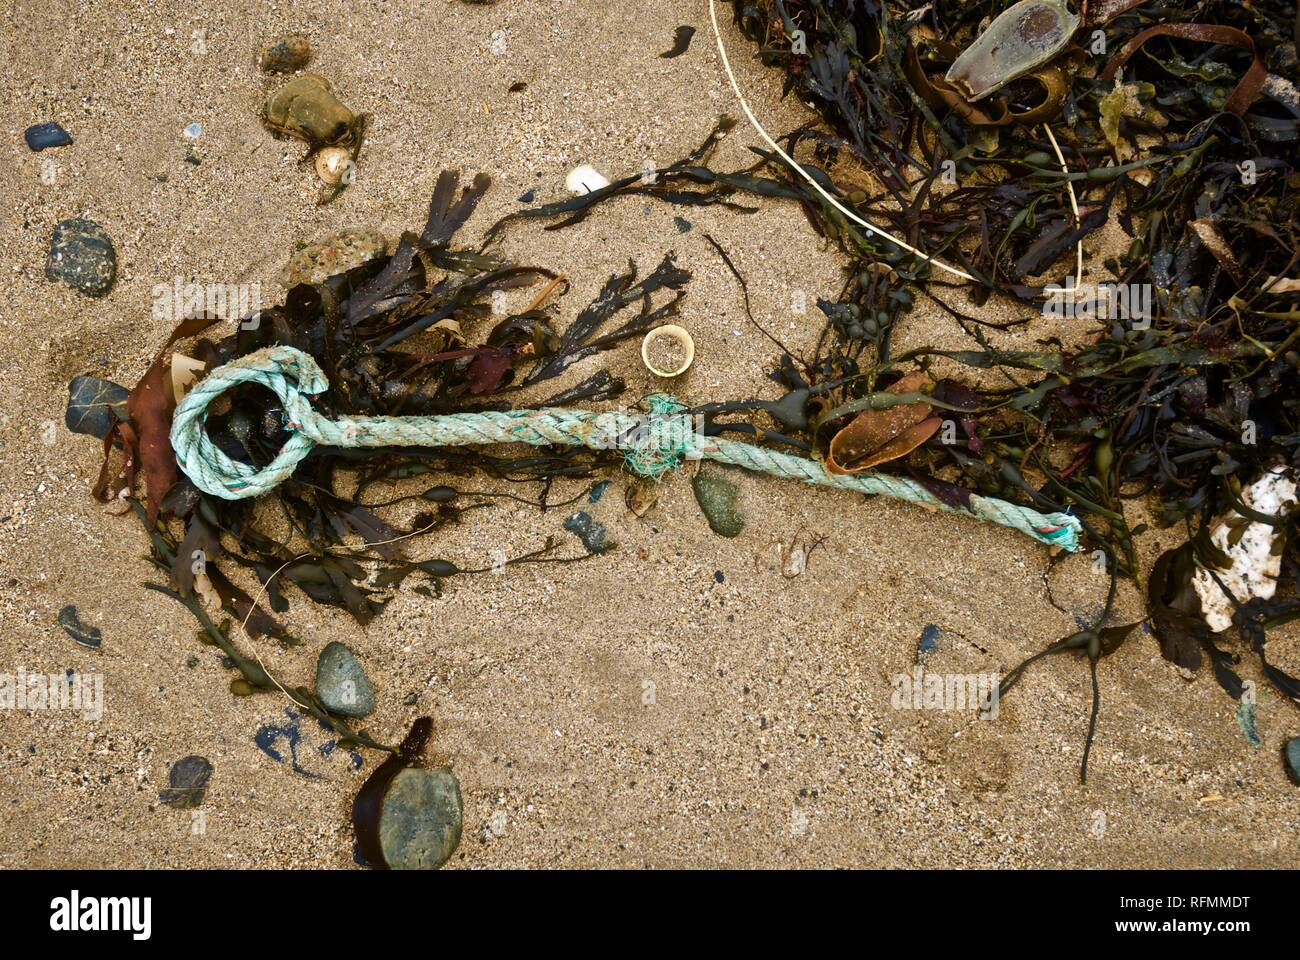 Plastic rope waste and pollution washed up on a beach in Rhosneigr, Anglesey, North Wales, UK - Stock Image